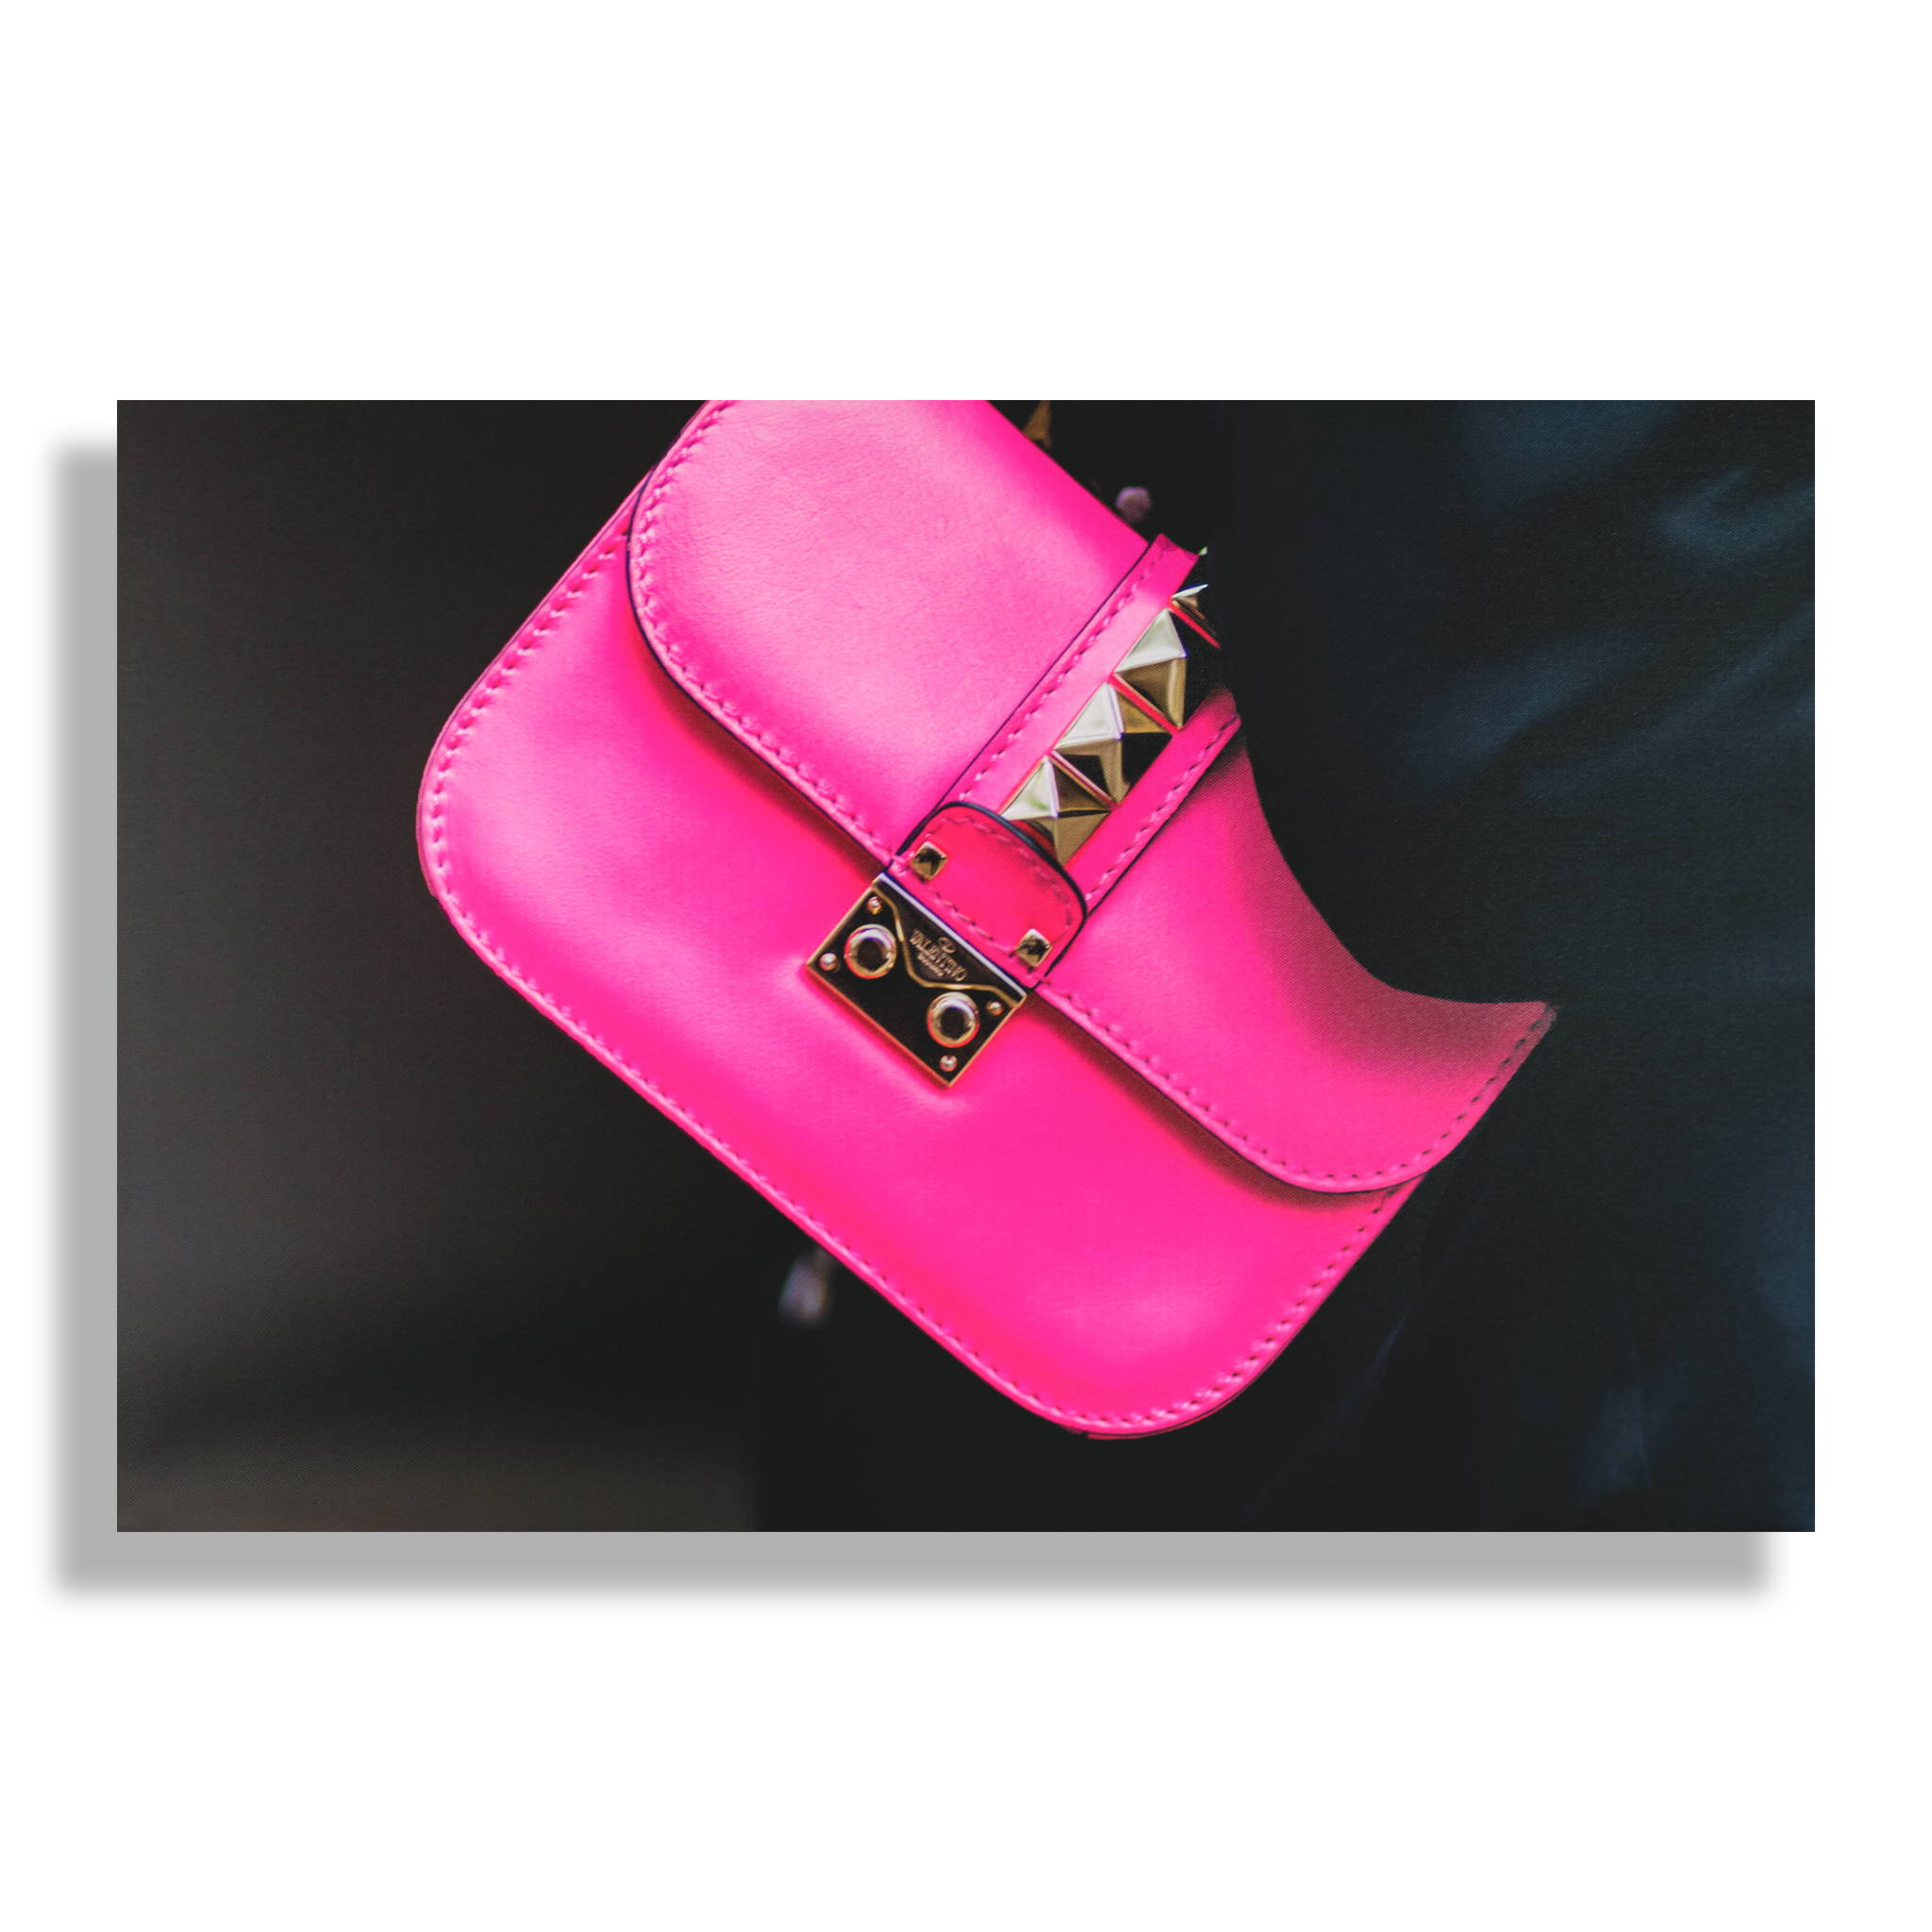 Fashion Wall Art Print - Fuchsia Fashionista - Recoveted